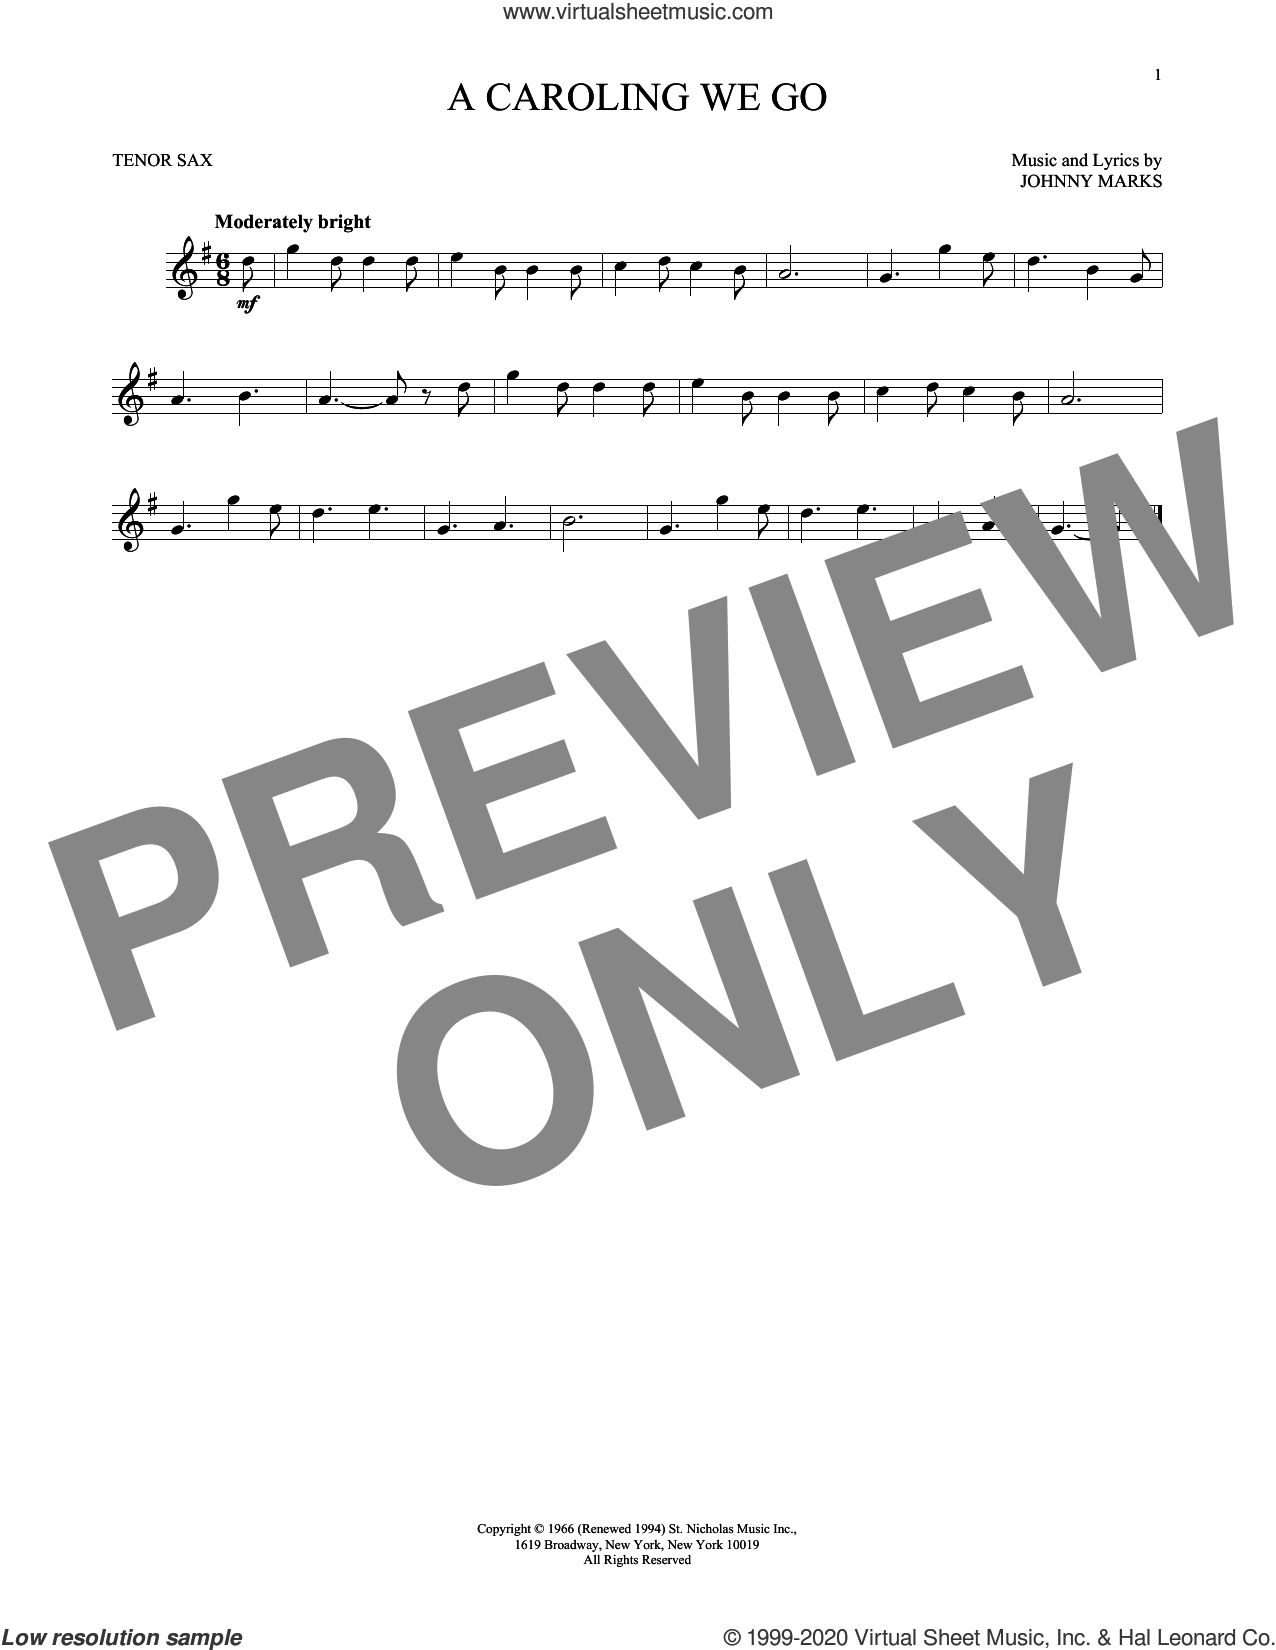 A Caroling We Go sheet music for tenor saxophone solo by Johnny Marks, intermediate skill level